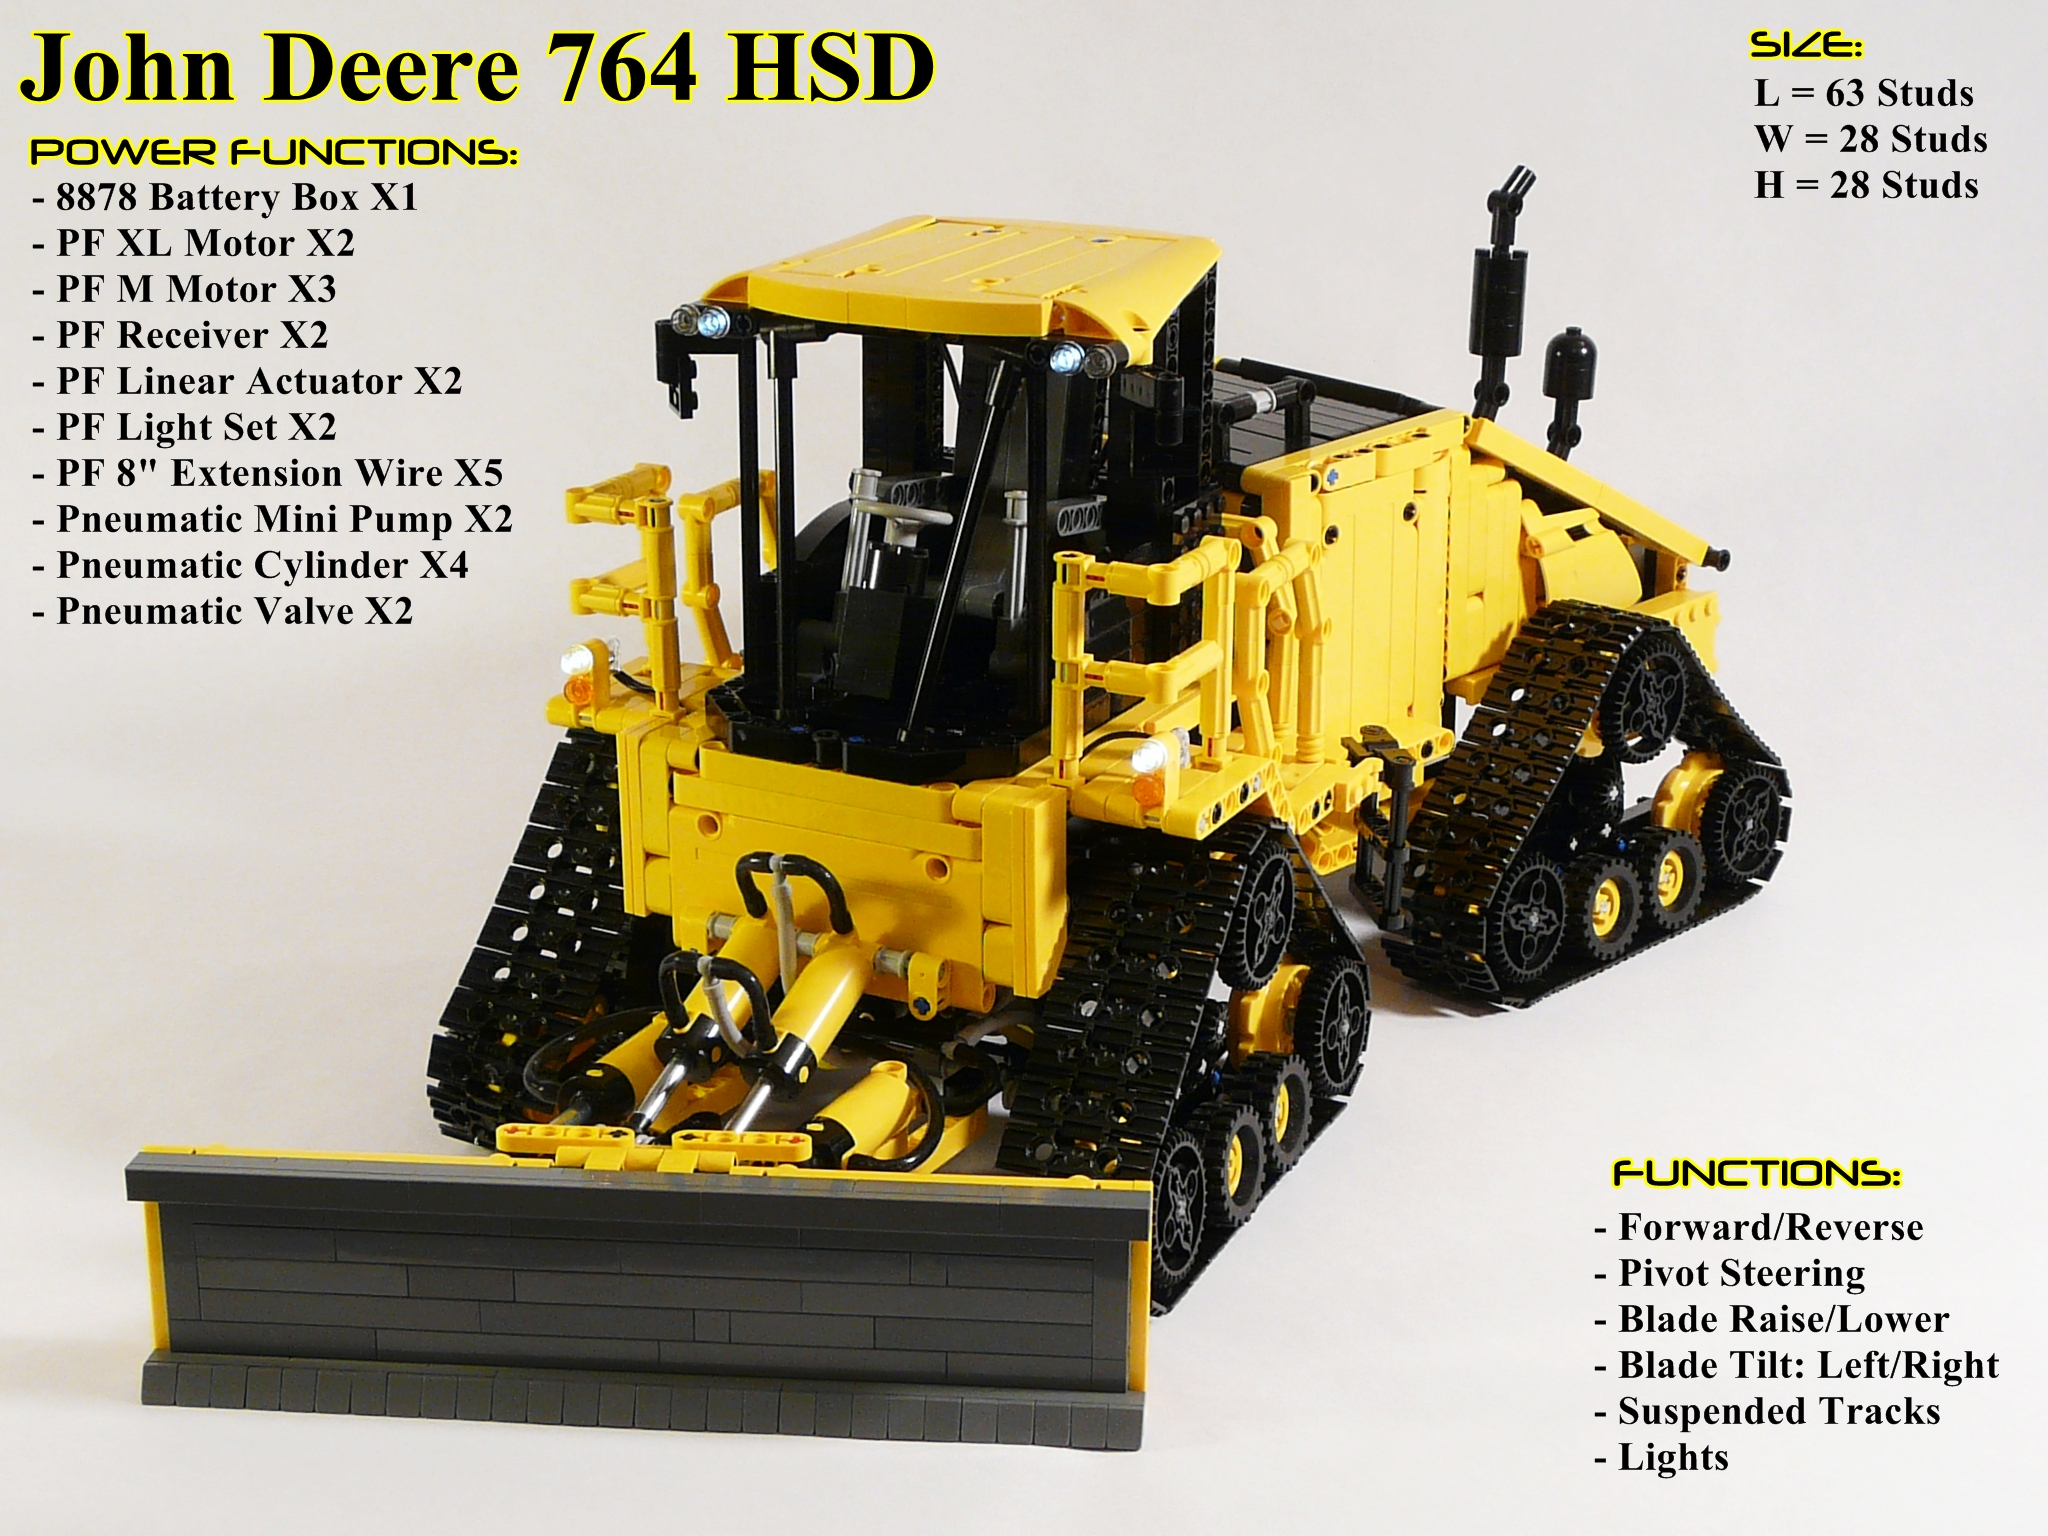 Awesome John Deere High Speed Dozer by Coney - LEGO Technic